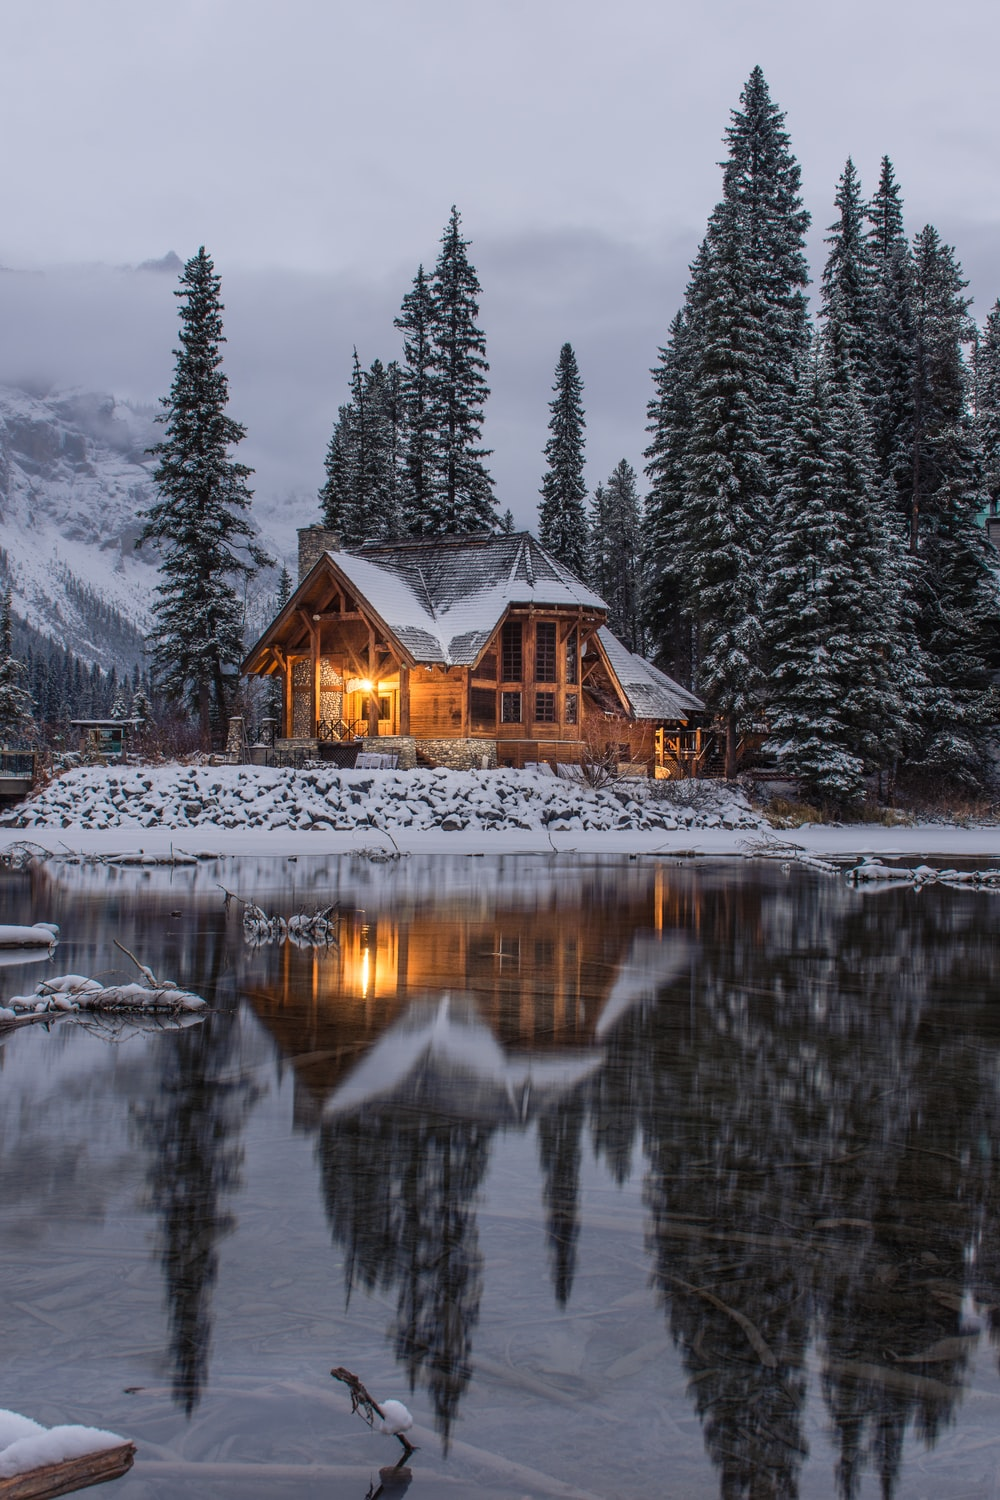 wooden house near pine trees and pond coated with snow during daytime